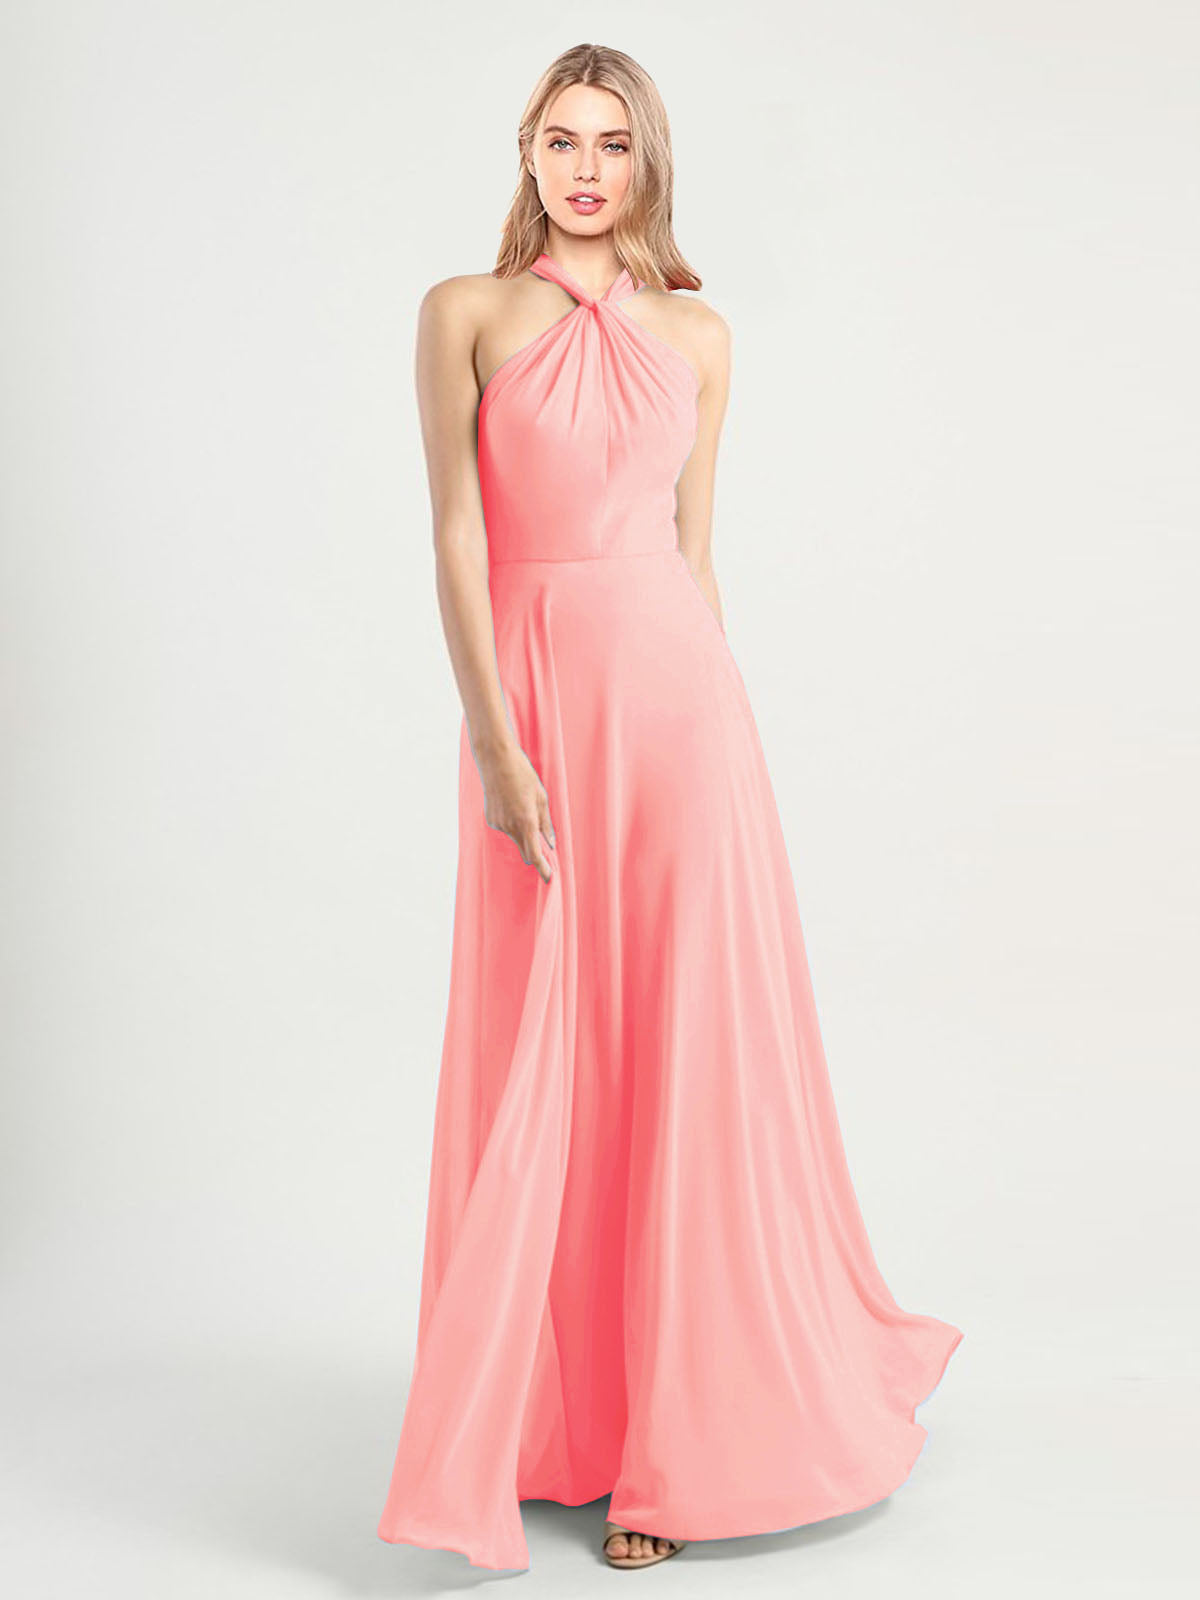 Long A-Line High Neck, Halter Sleeveless Salmon Chiffon Bridesmaid Dress Yoli